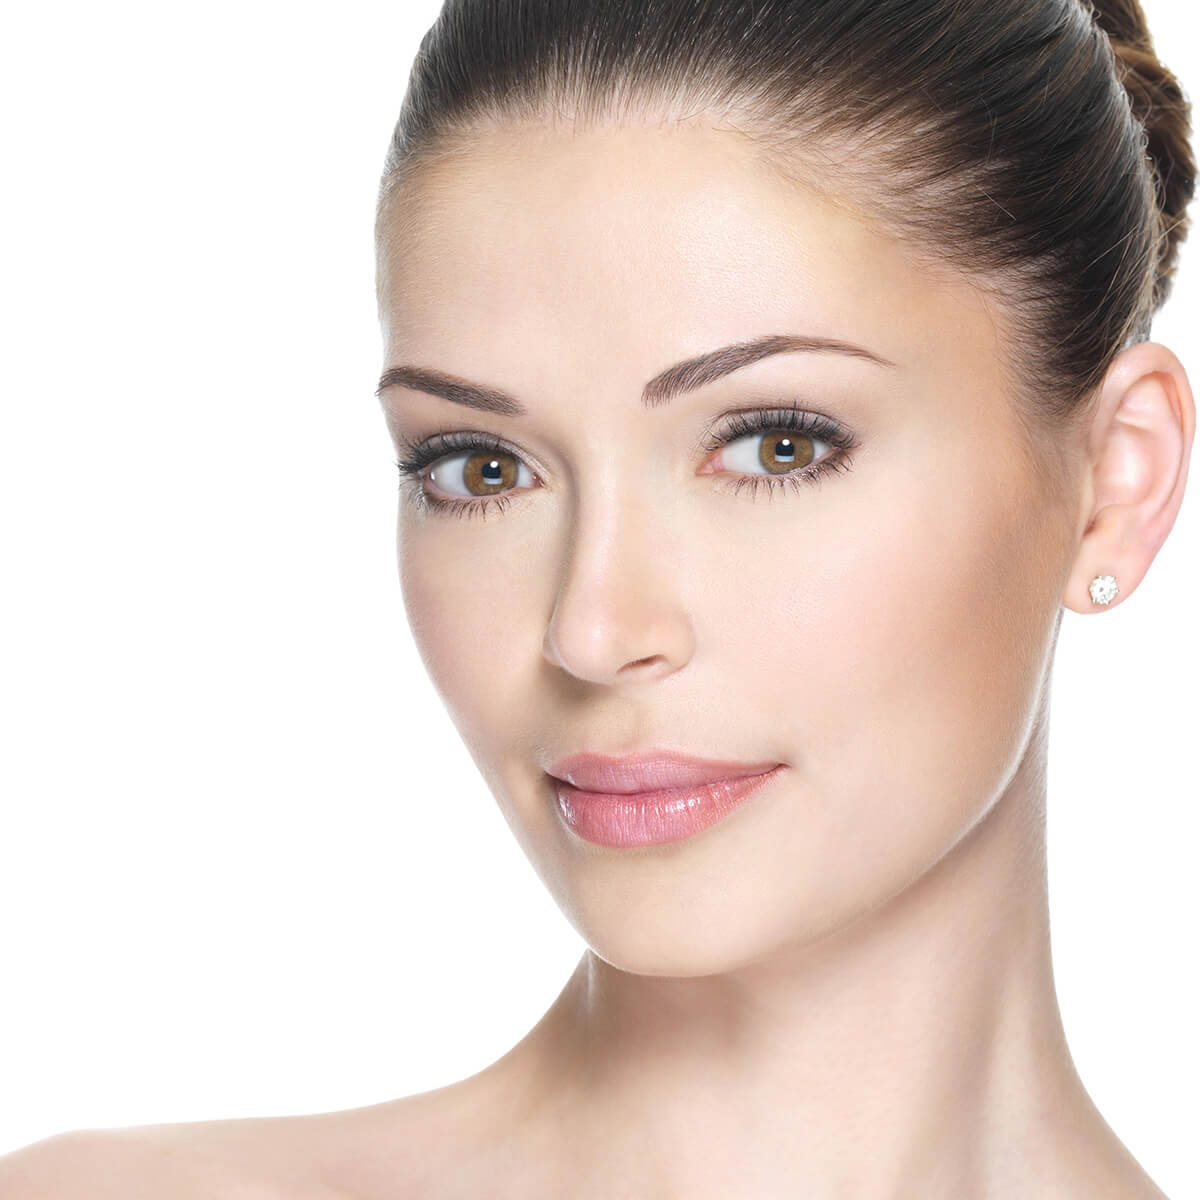 What Dermatology Services Are Available to Me Near the Walnut Creek, California Area?